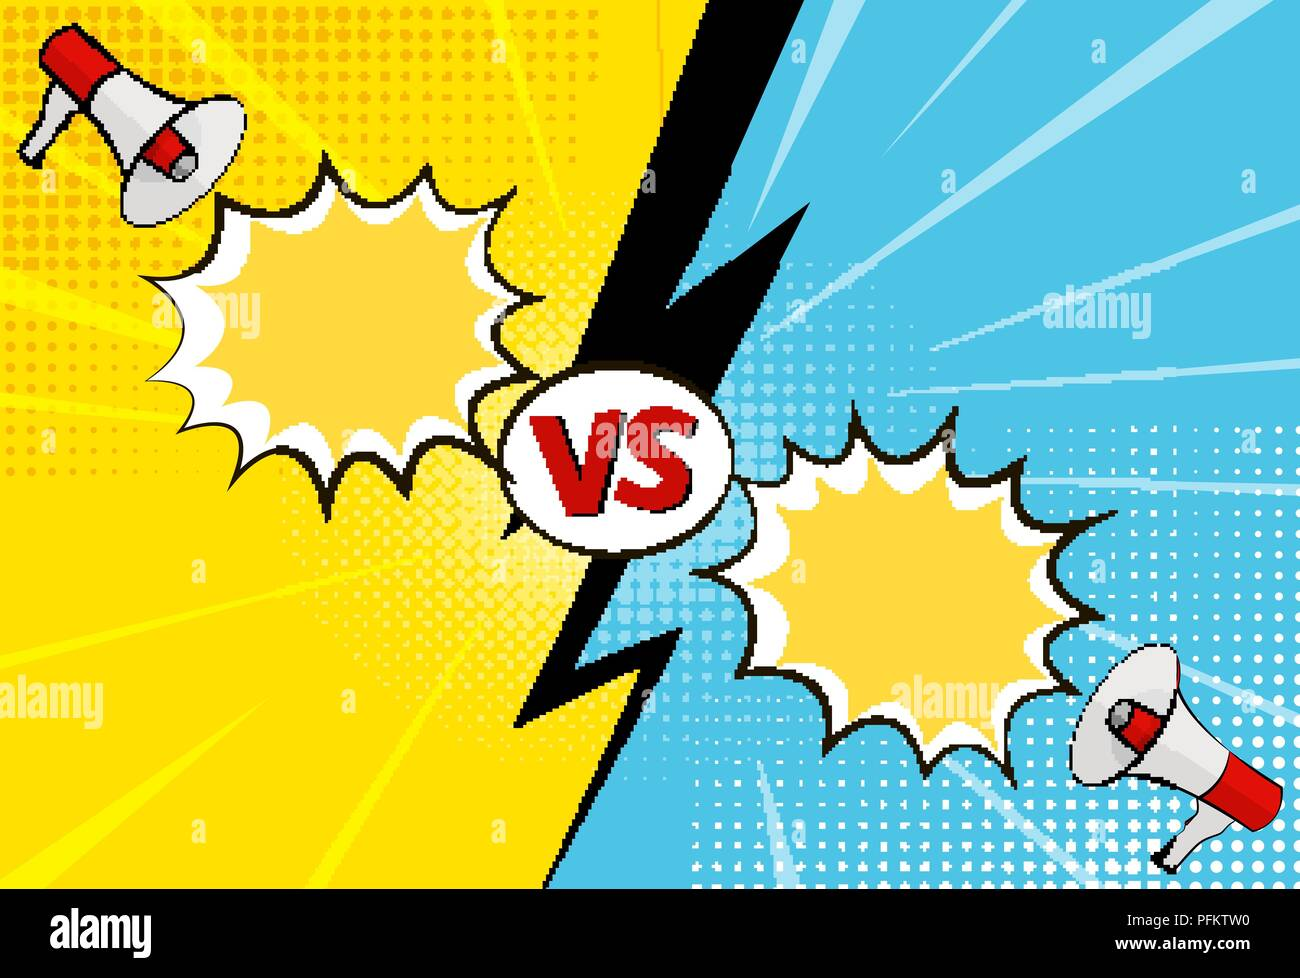 Versus letters figh background in pop art style - Stock Vector